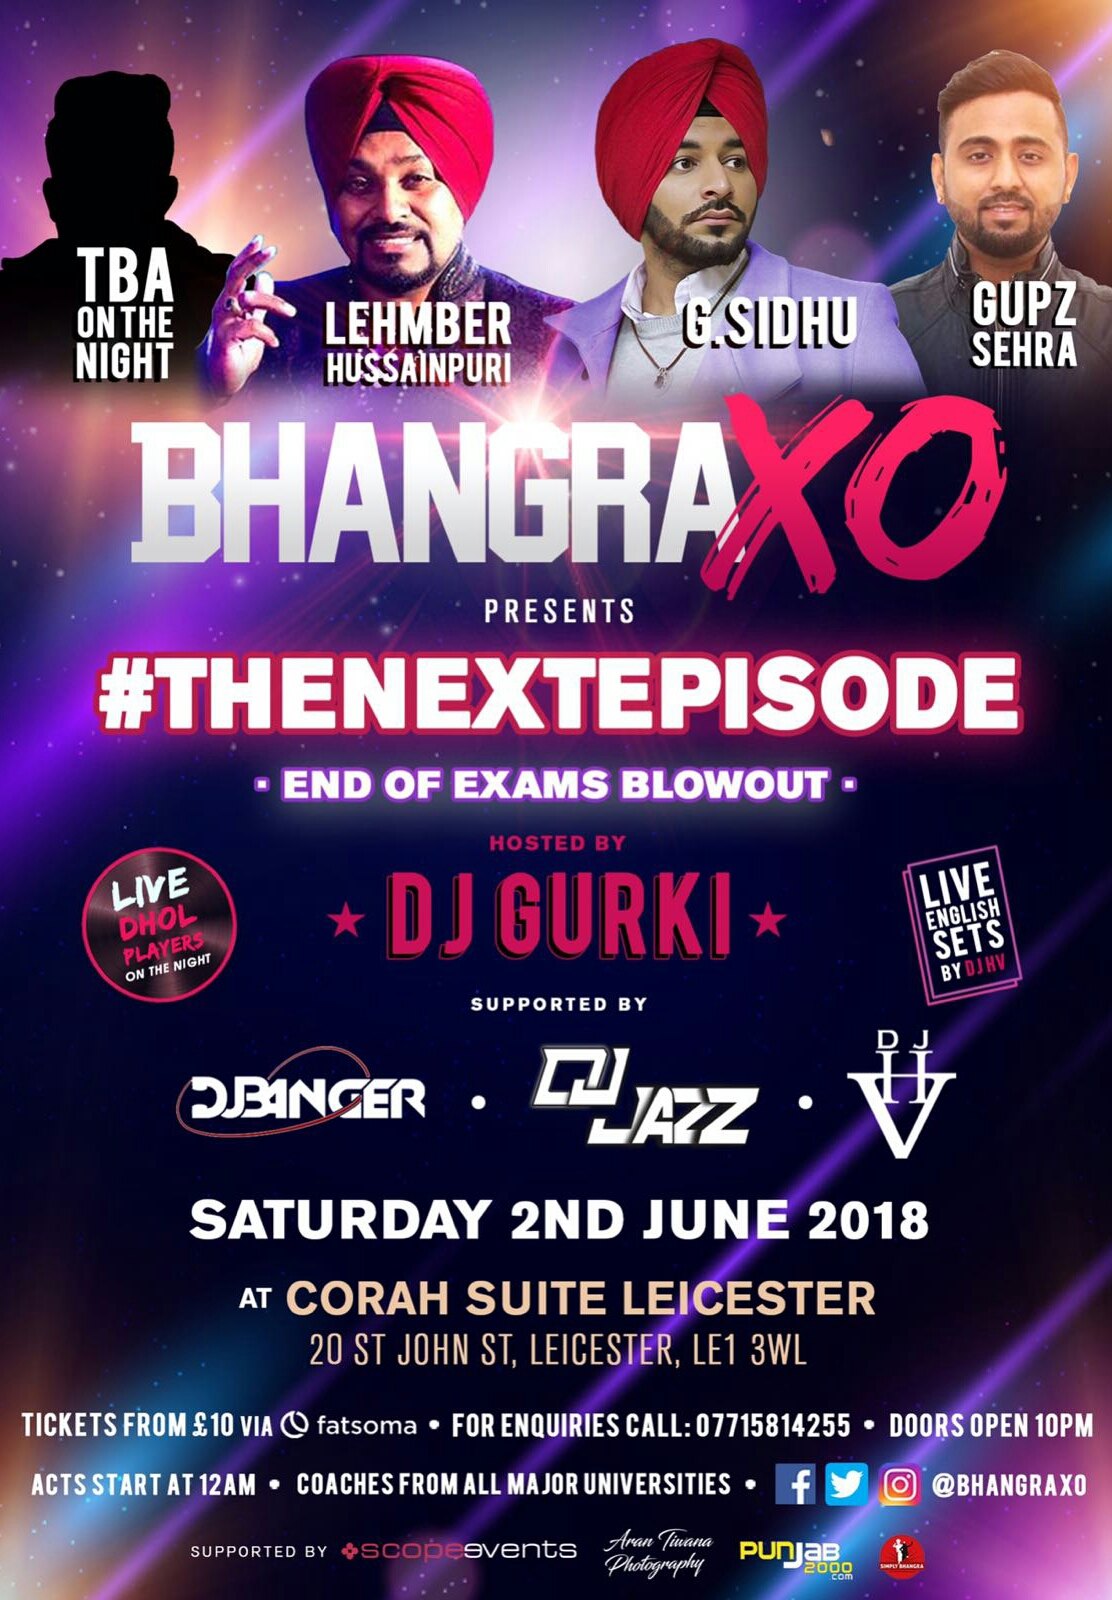 Bhangra XO Presents The Next Episode